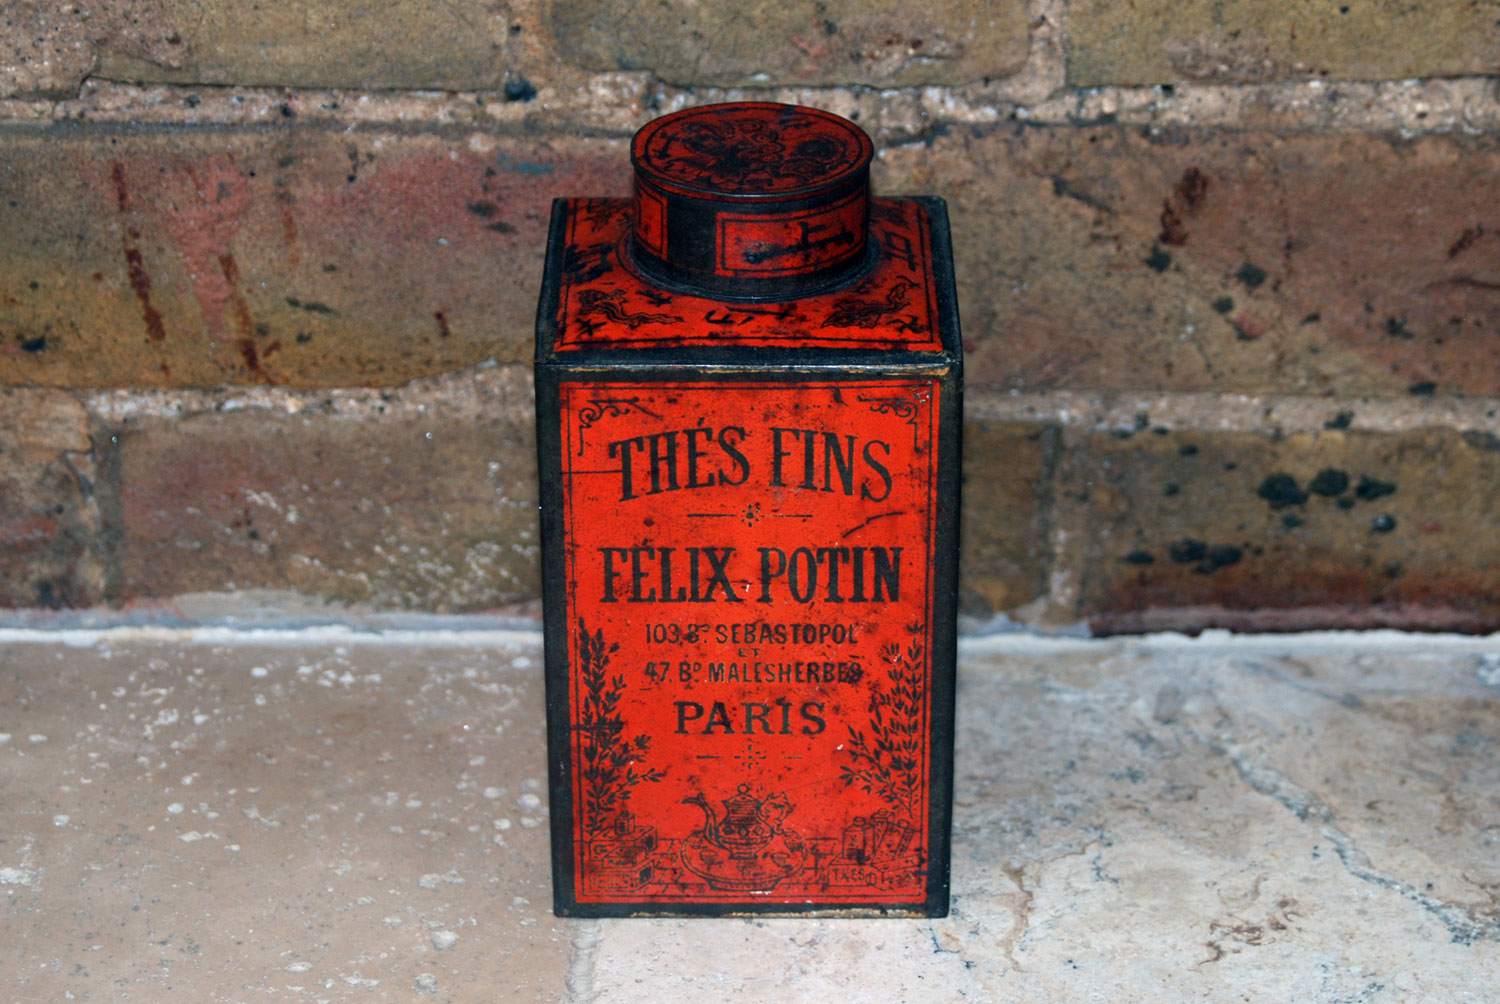 antique vintage felix potin tea caddy toleware tin thes fins french brocante